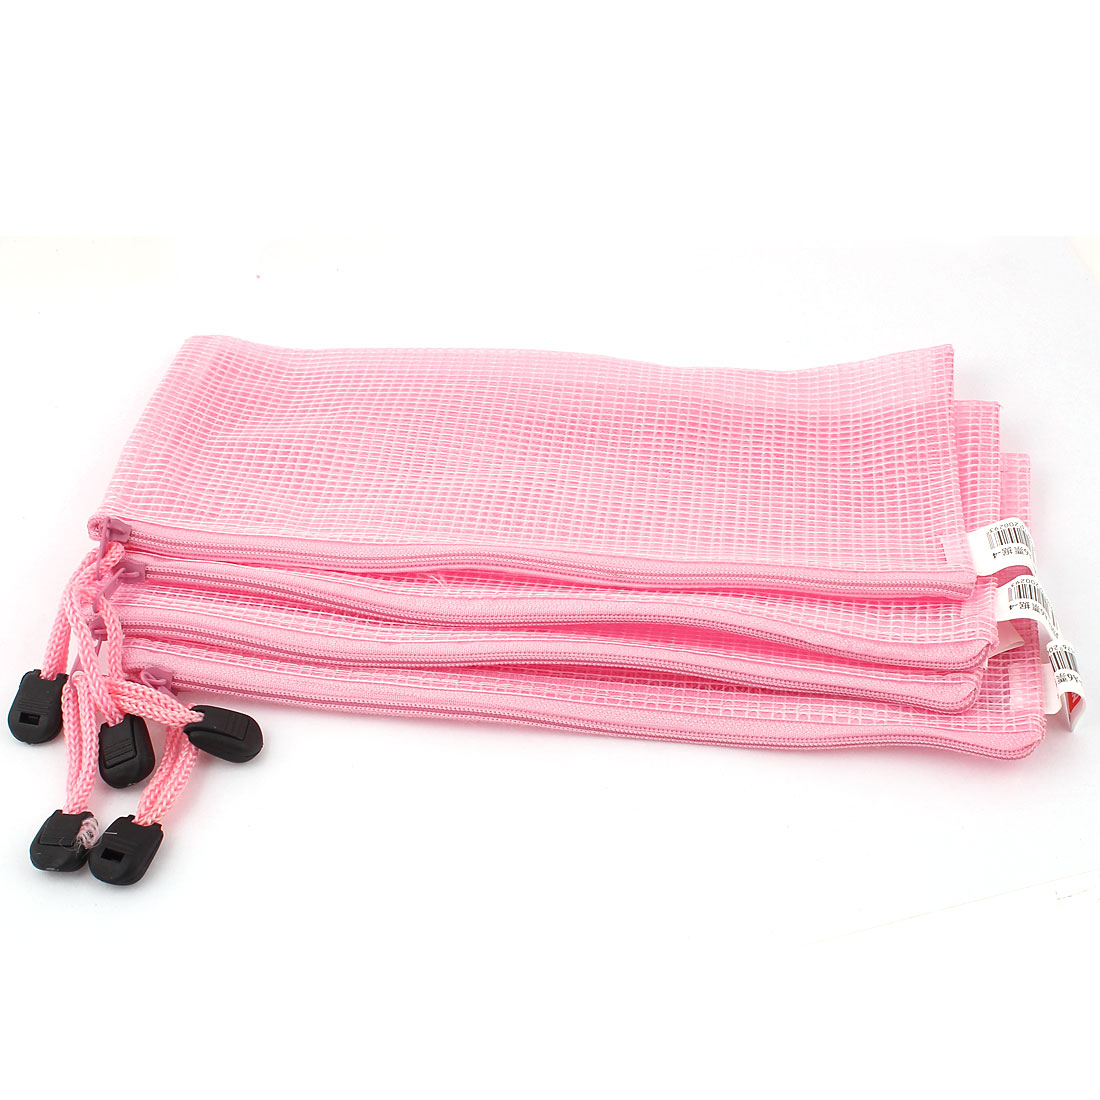 Zippered PVC Mesh A6 Paper Document File Storage Bag Holder Pouch Pink 5pcs